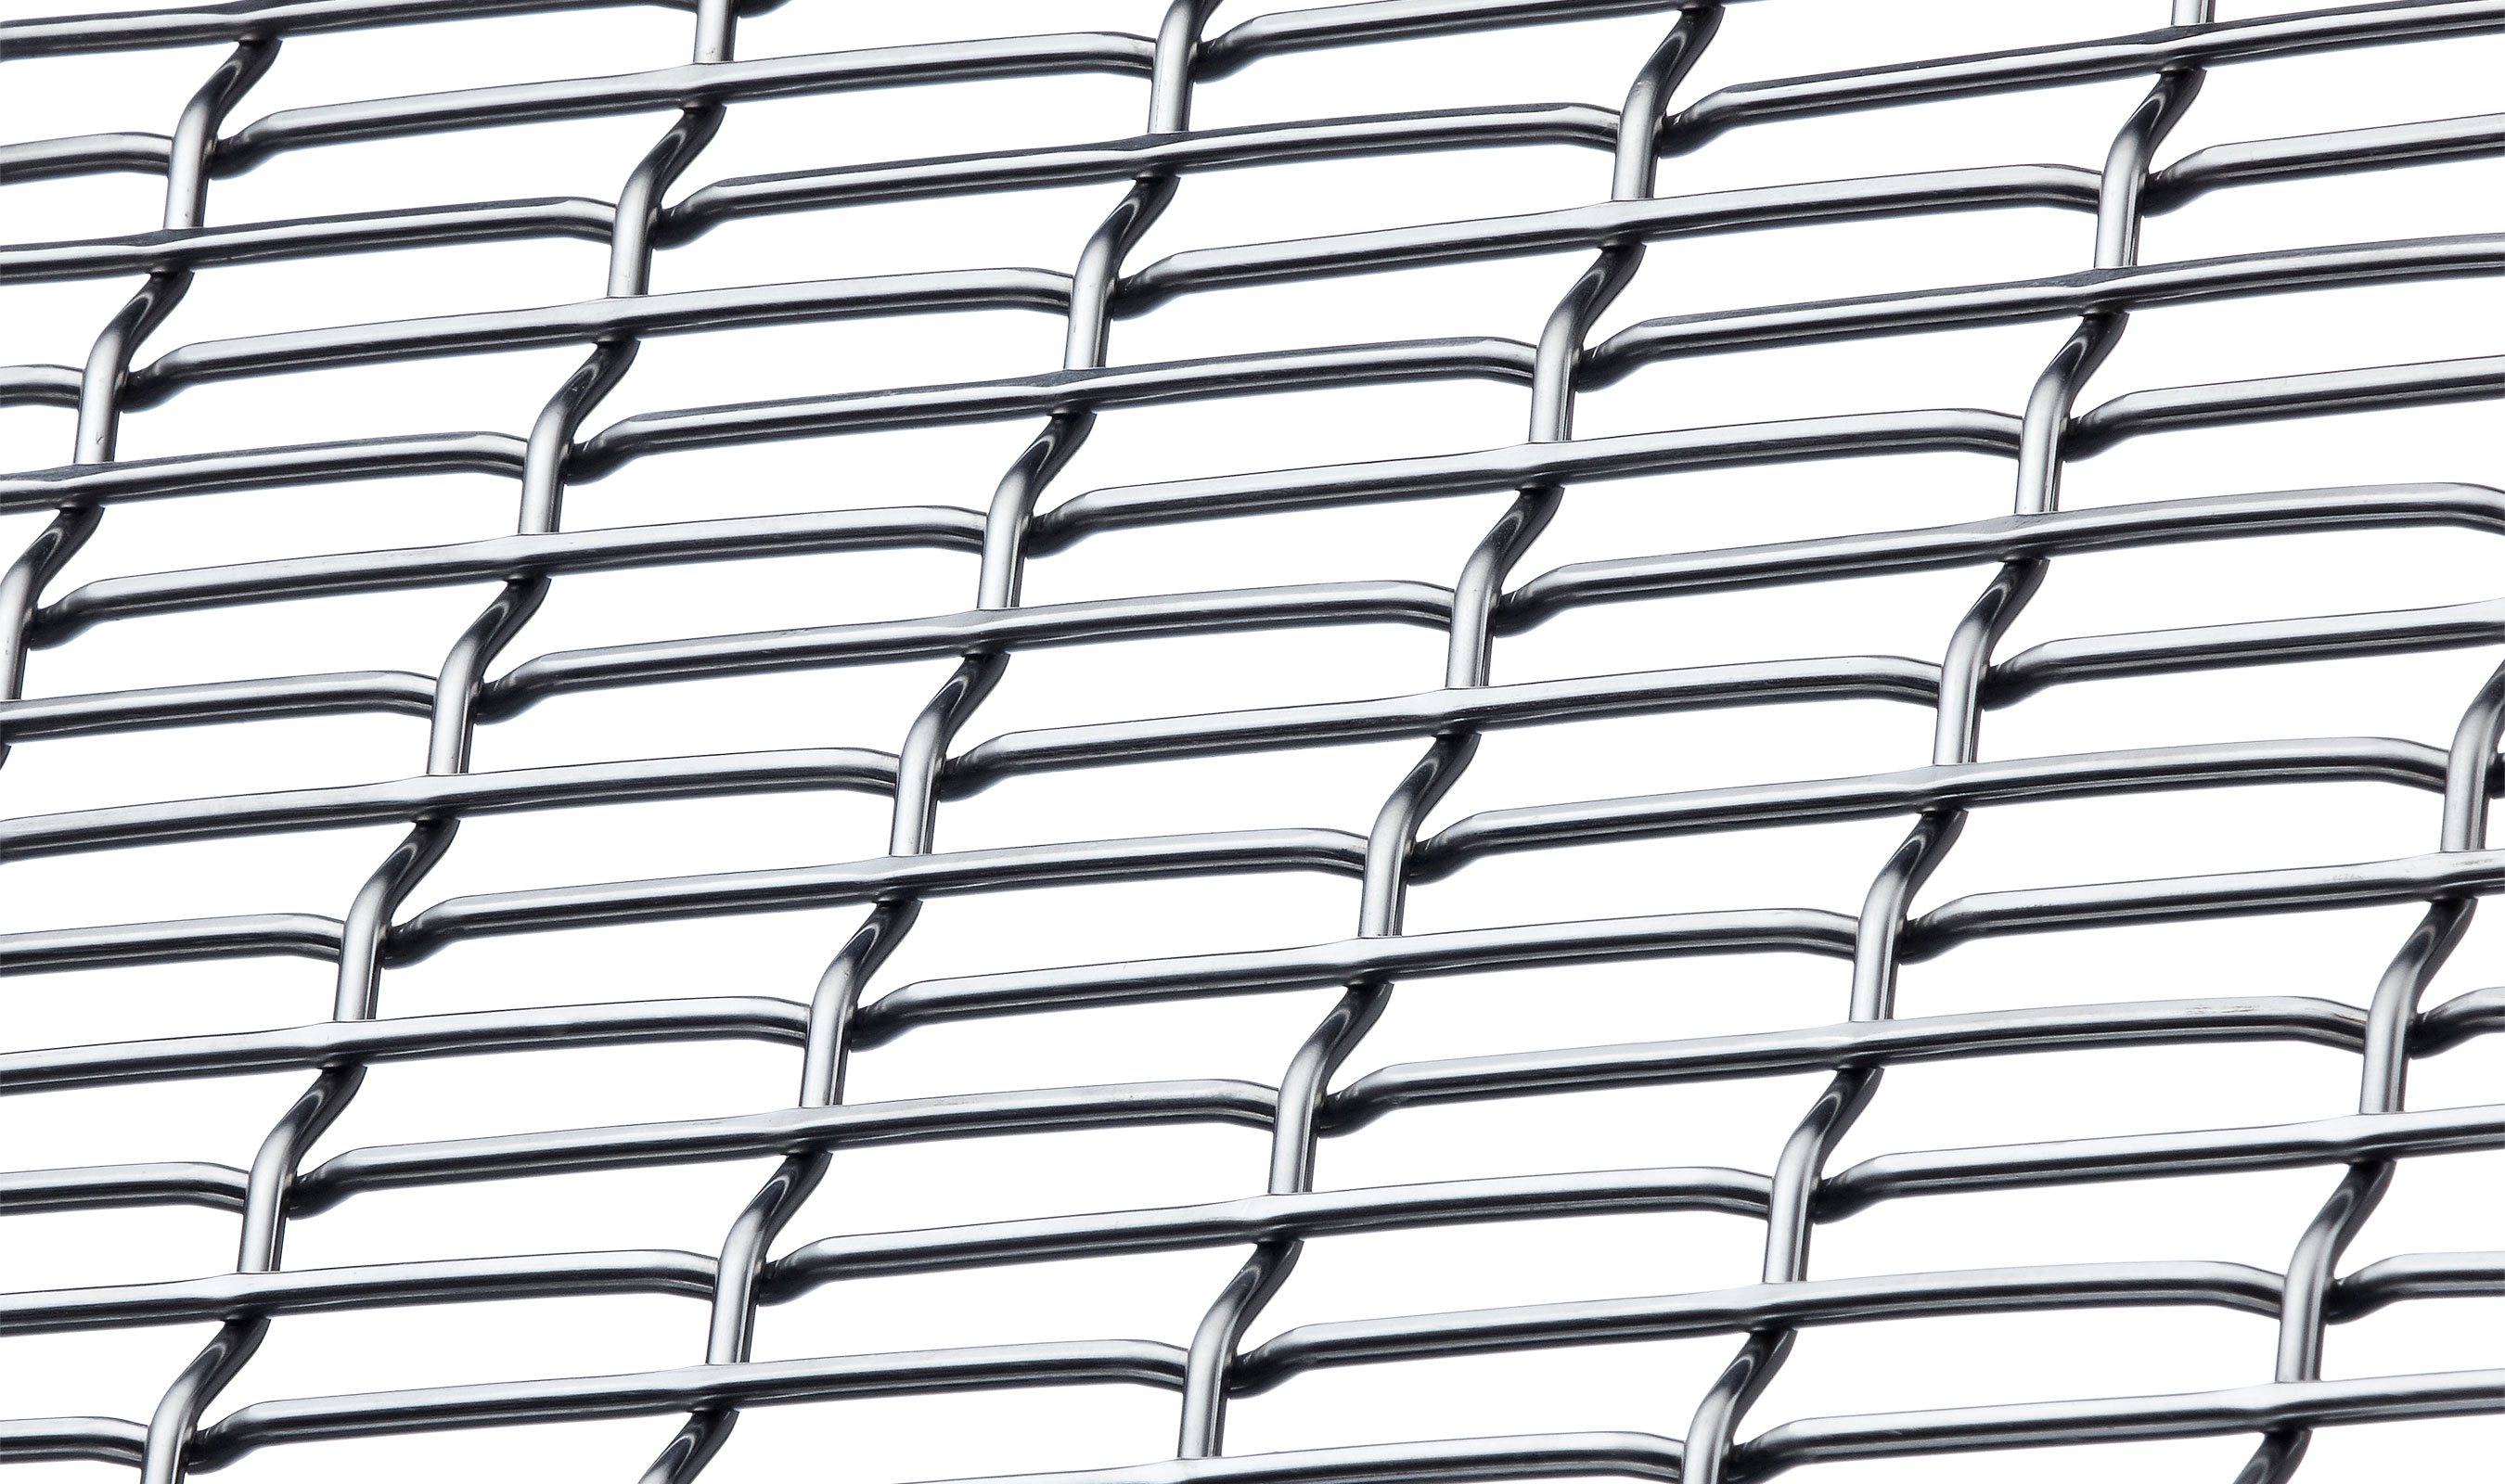 FPZ-16 rectangular architectural stainless steel mesh